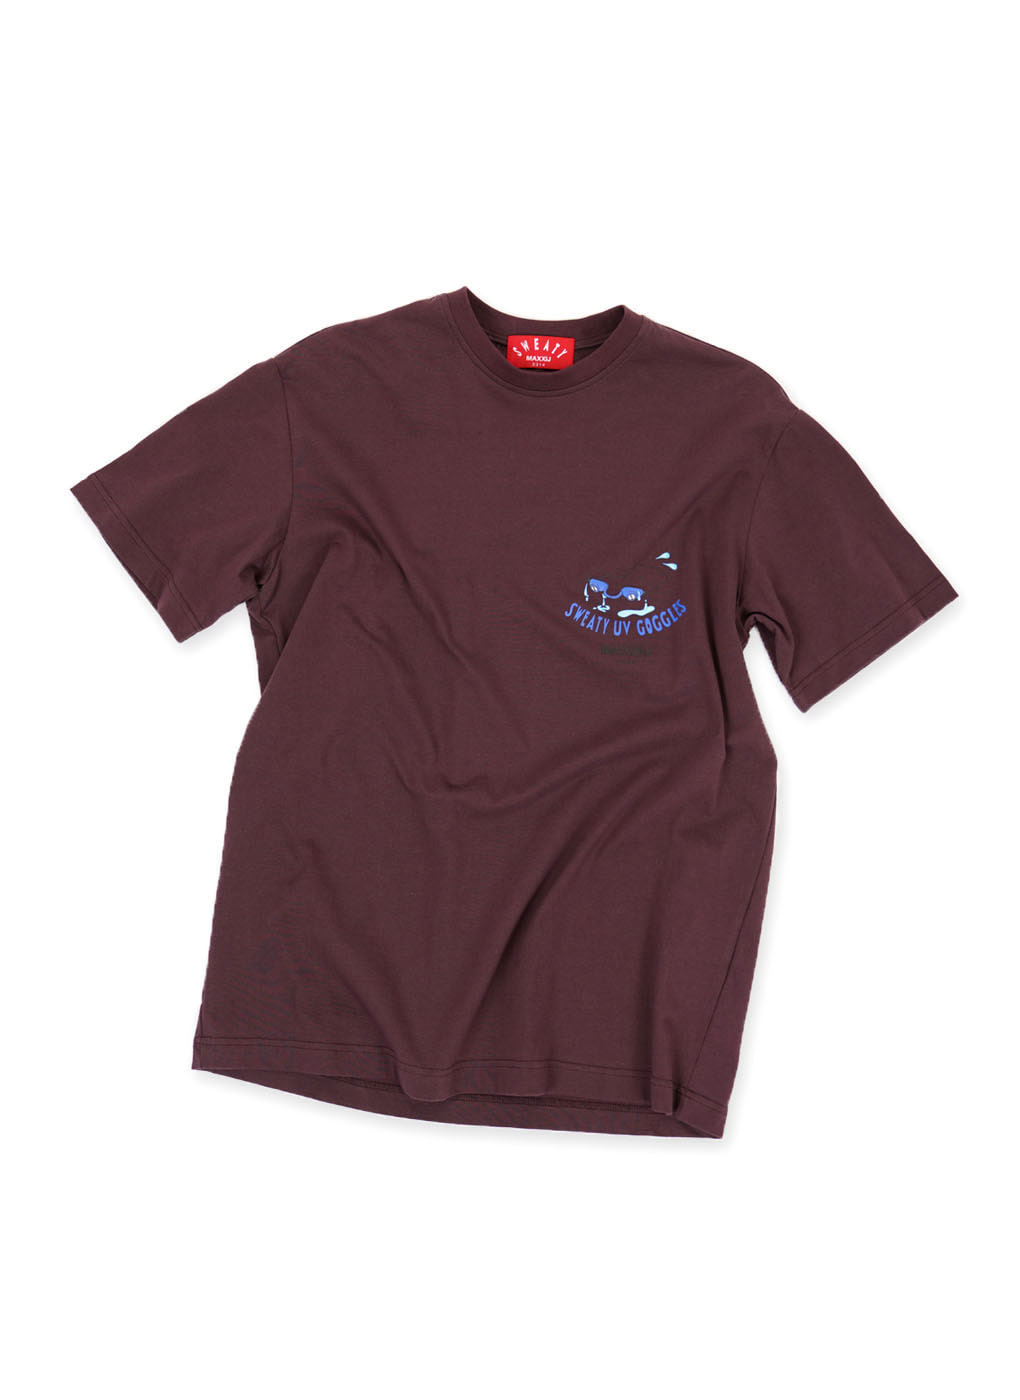 Dark Burgundy Sweaty Goggles Cotton Jersey T-shirts